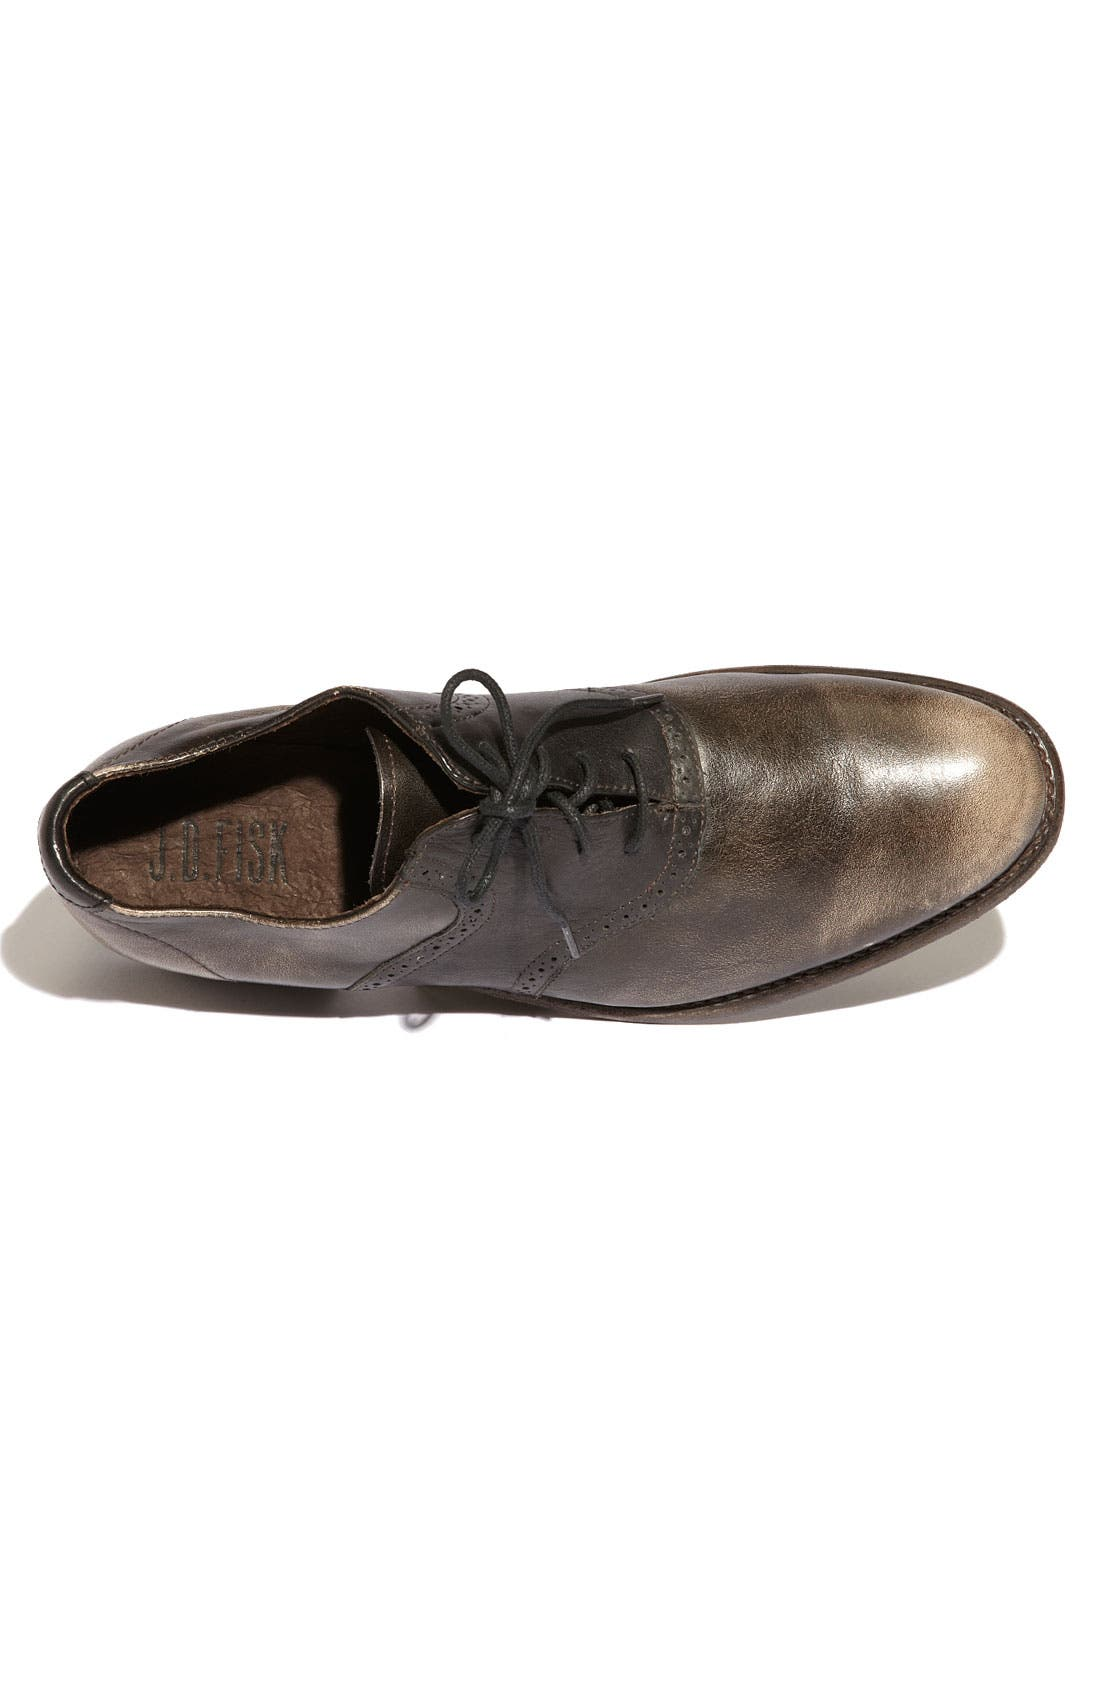 Alternate Image 3  - J.D. Fisk 'Nikko' Saddle Shoe